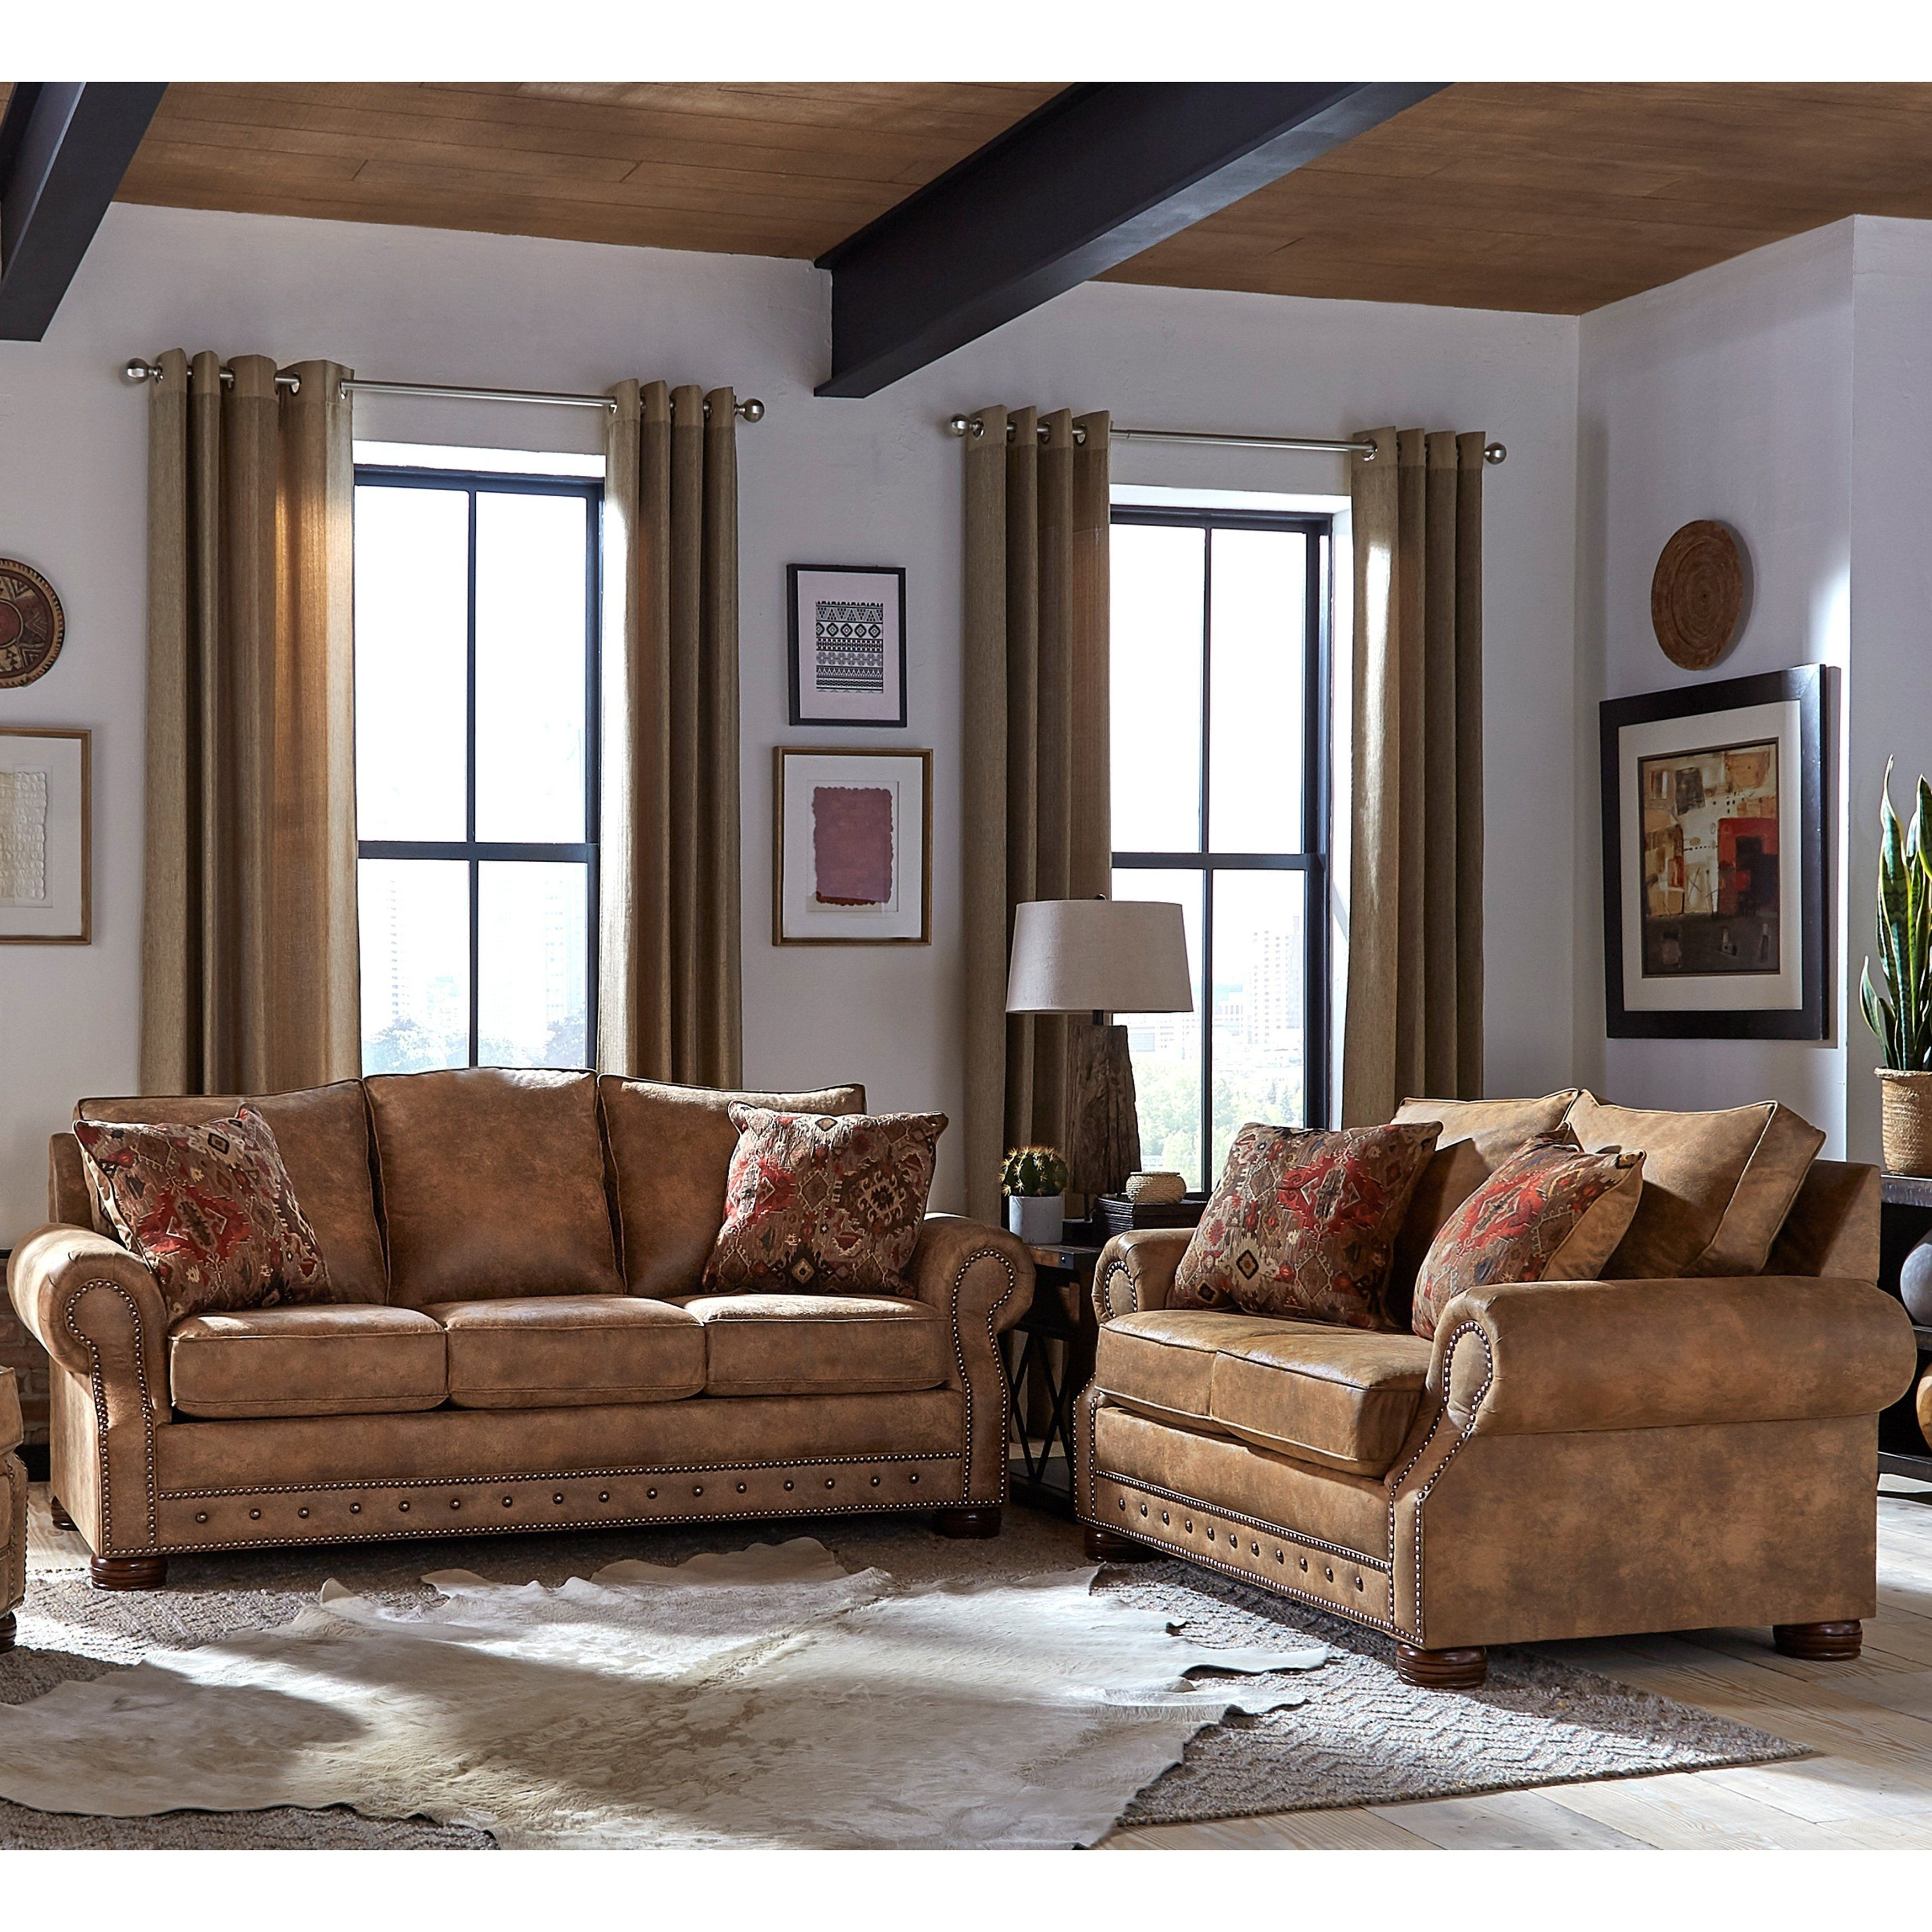 Made In Usa Rancho Rustic Brown Buckskin Fabric Sofa Bed And Loveseat With Images Living Room Sets Sofa And Loveseat Set